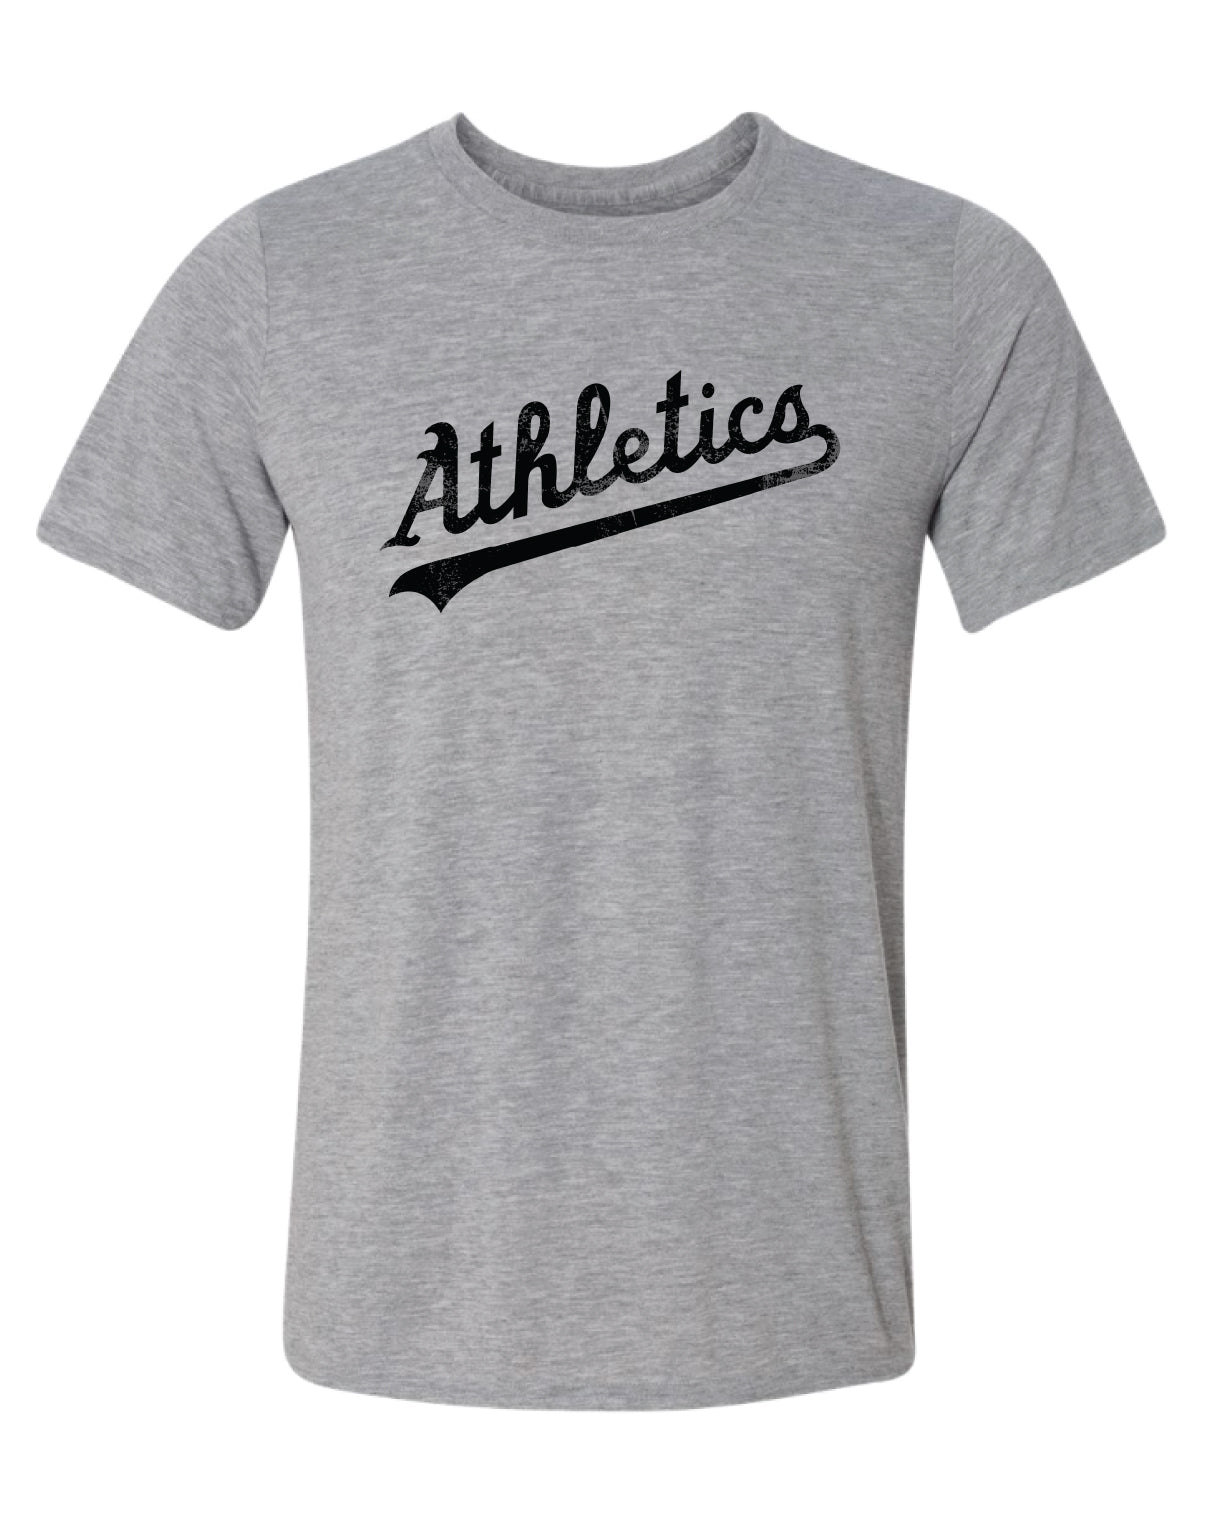 A's Athletics Distressed Logo Dri-fit T-Shirt